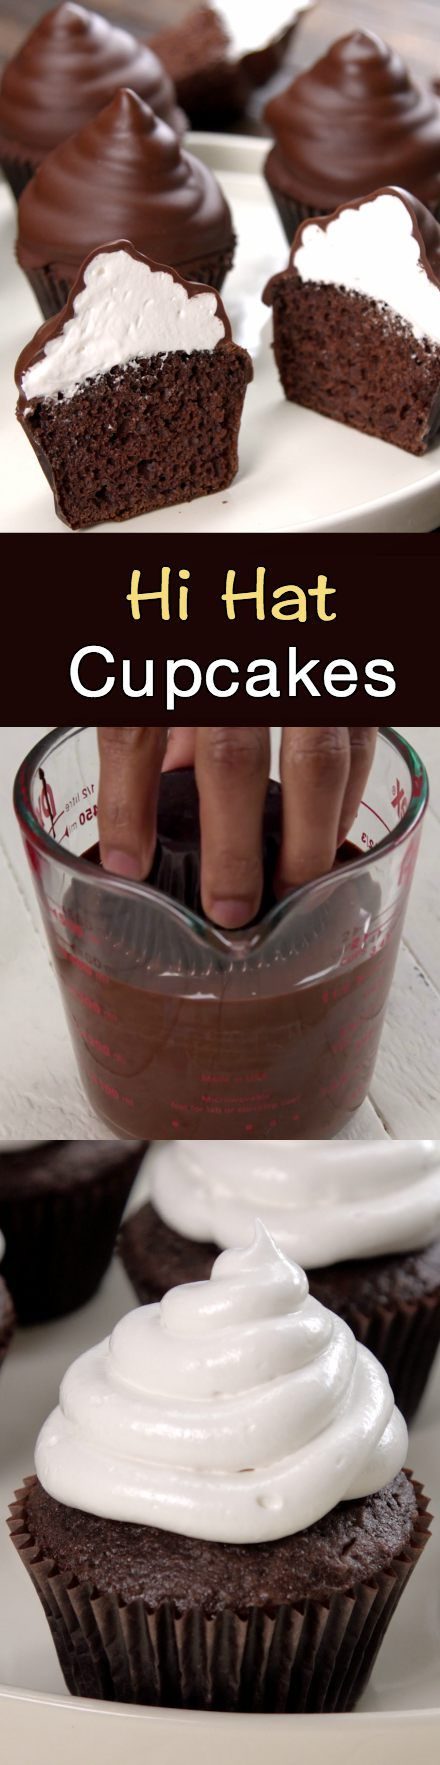 Dipped cupcakes in chocolate